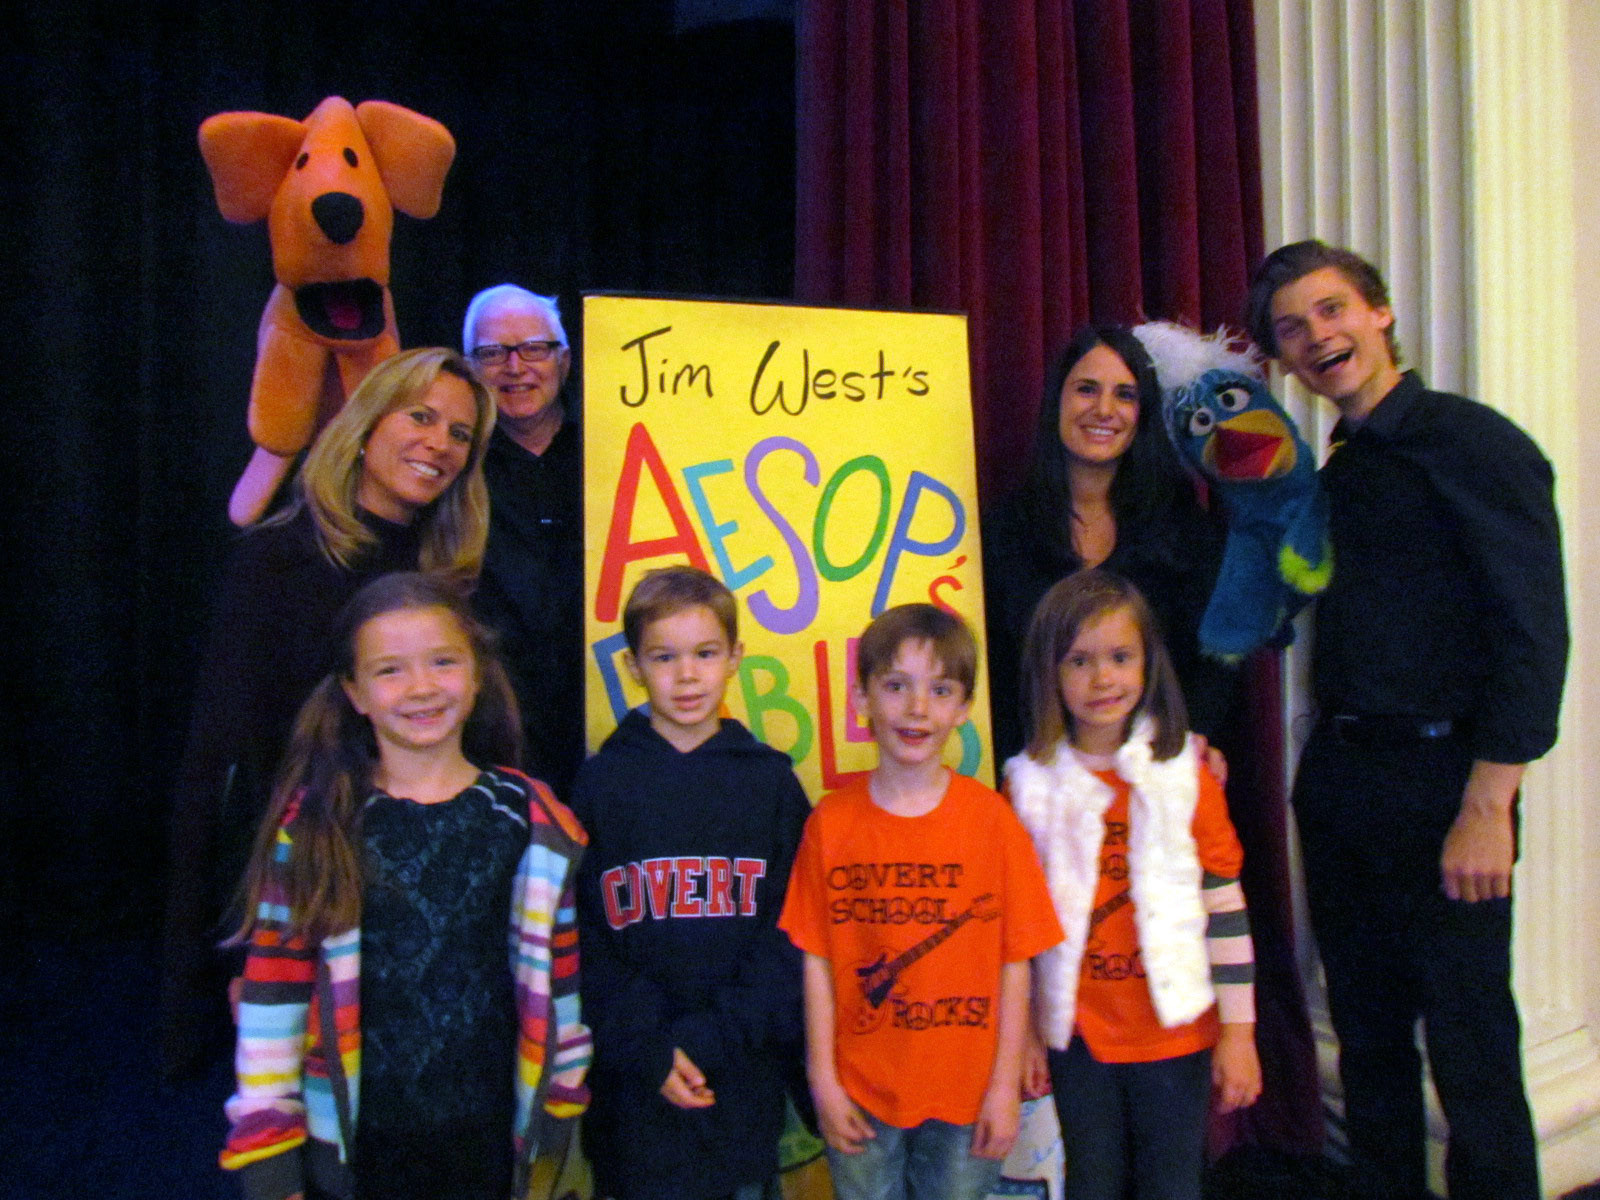 Teachers Valerie Sprague and Antoinette Morgan, and first graders Julie Coles, Joshua DePaoli, Connor Erickson and Liana McCarthy posed with puppeteers Jim West and Ian Antal before the show.